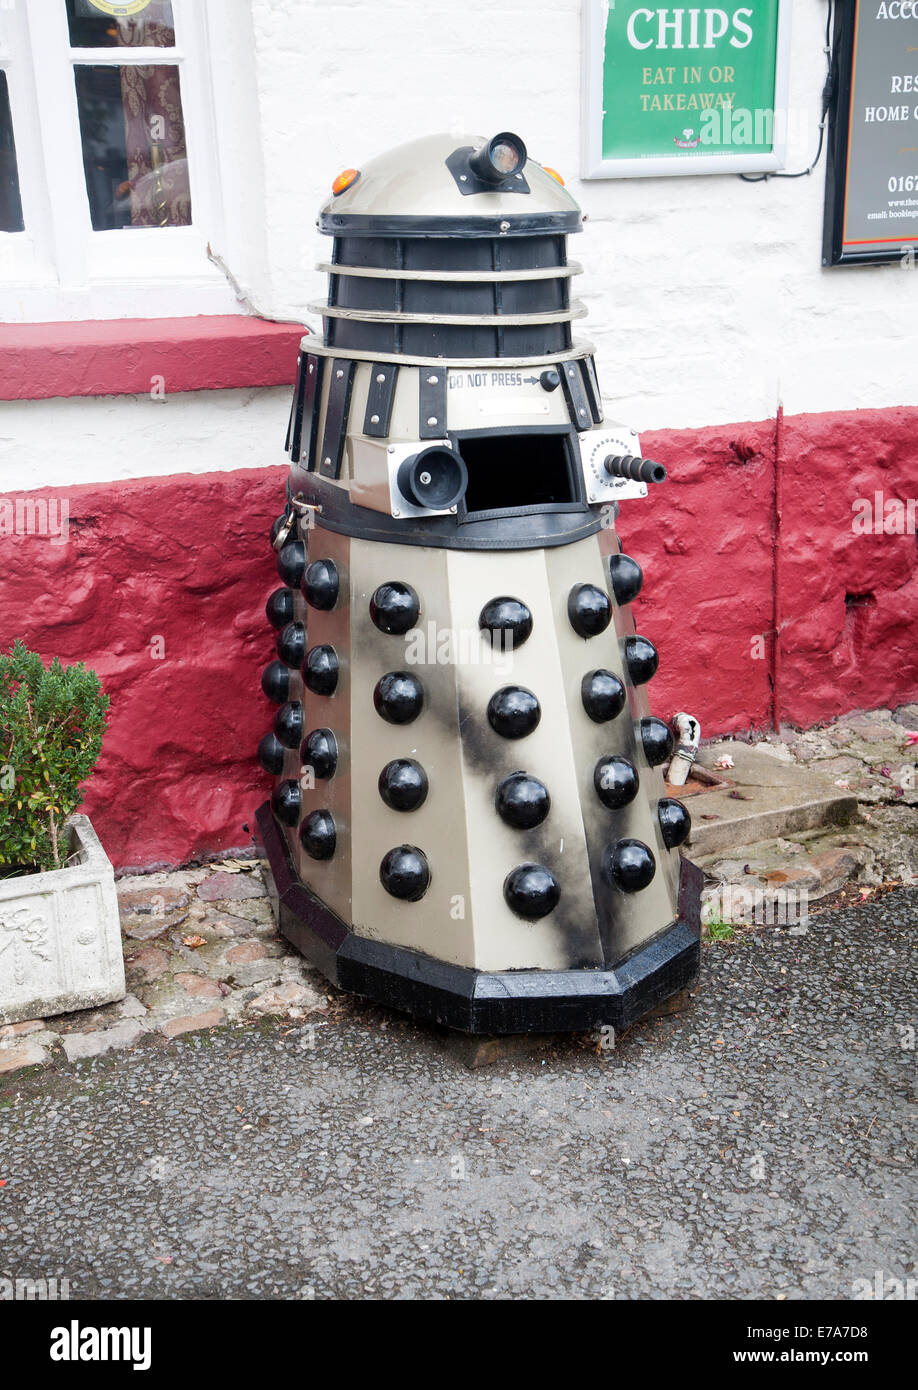 Dr Who Dalek model used as a waste bin, Aldbourne, Wiltshire, England - Stock Image